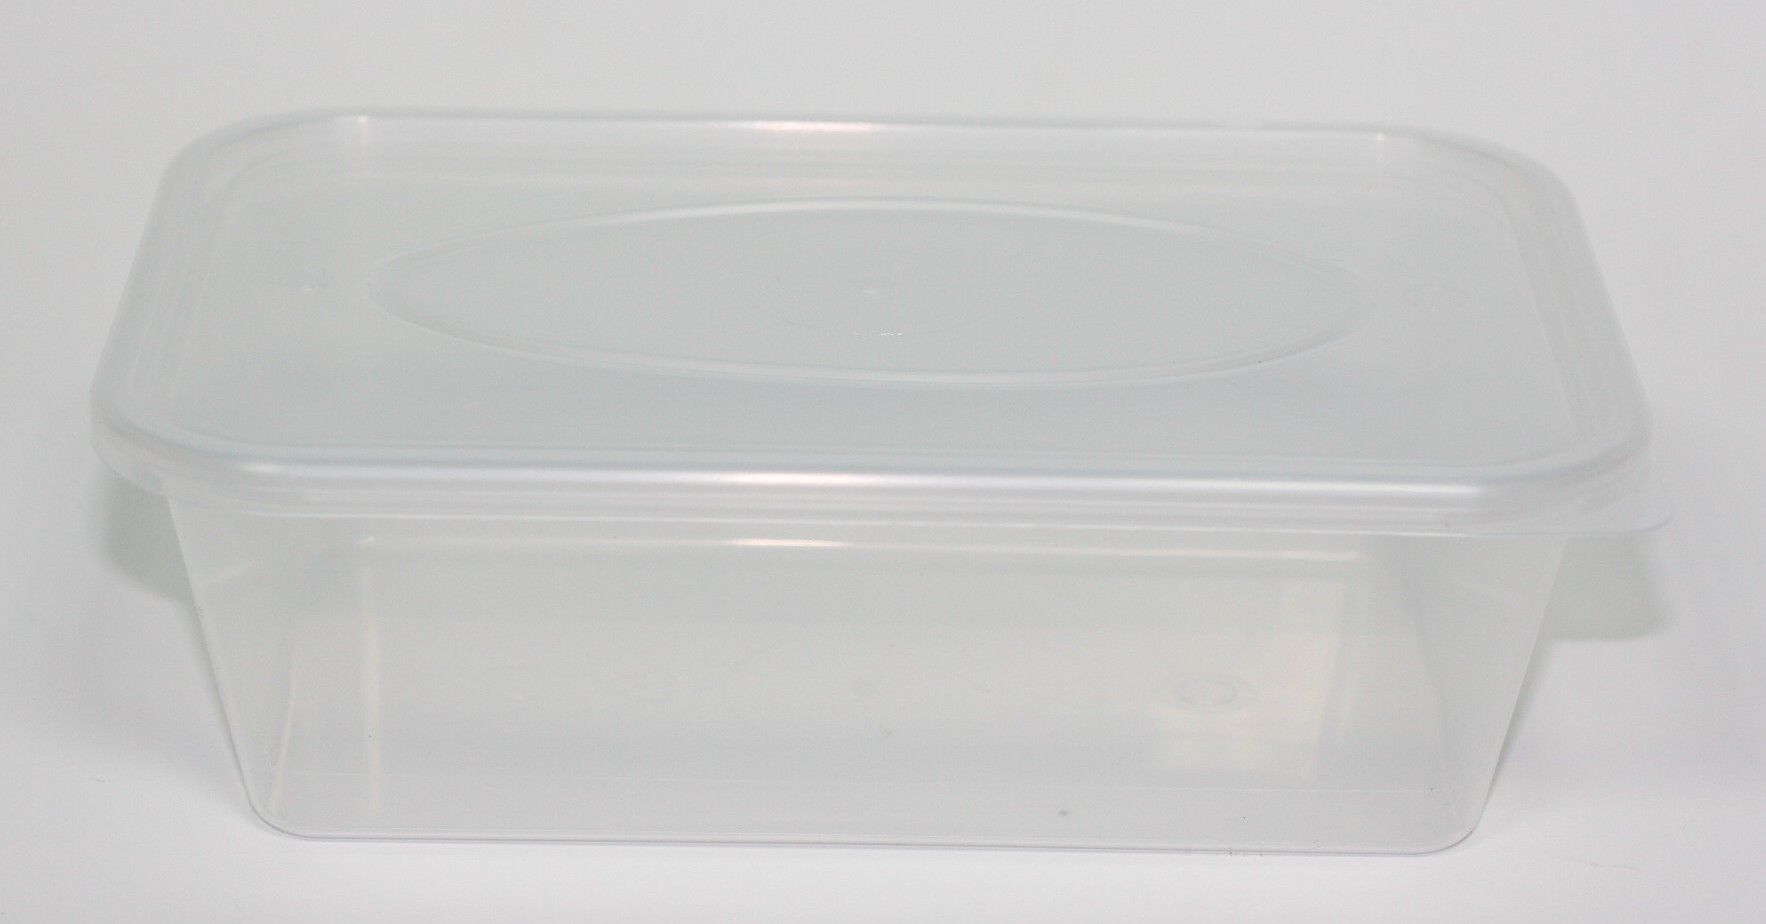 650ml FOOD STORAGE TUB NATURAL PP & LID